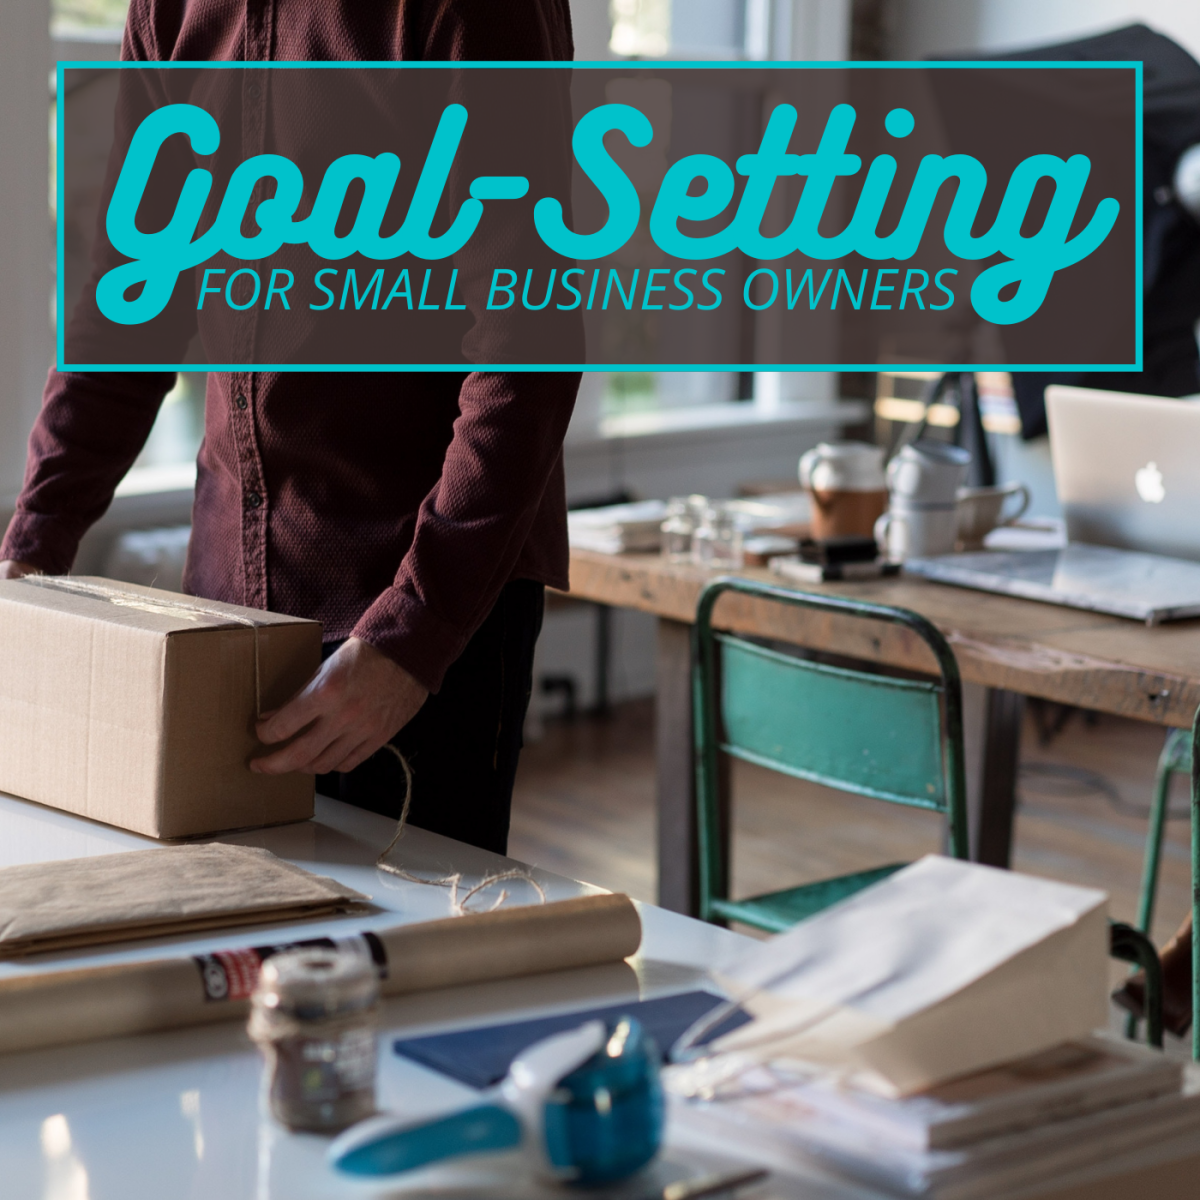 Having owned businesses for nearly two decades, I've learned that setting long-term goals and then working backward toward short-term goals is an effective strategy for growth.